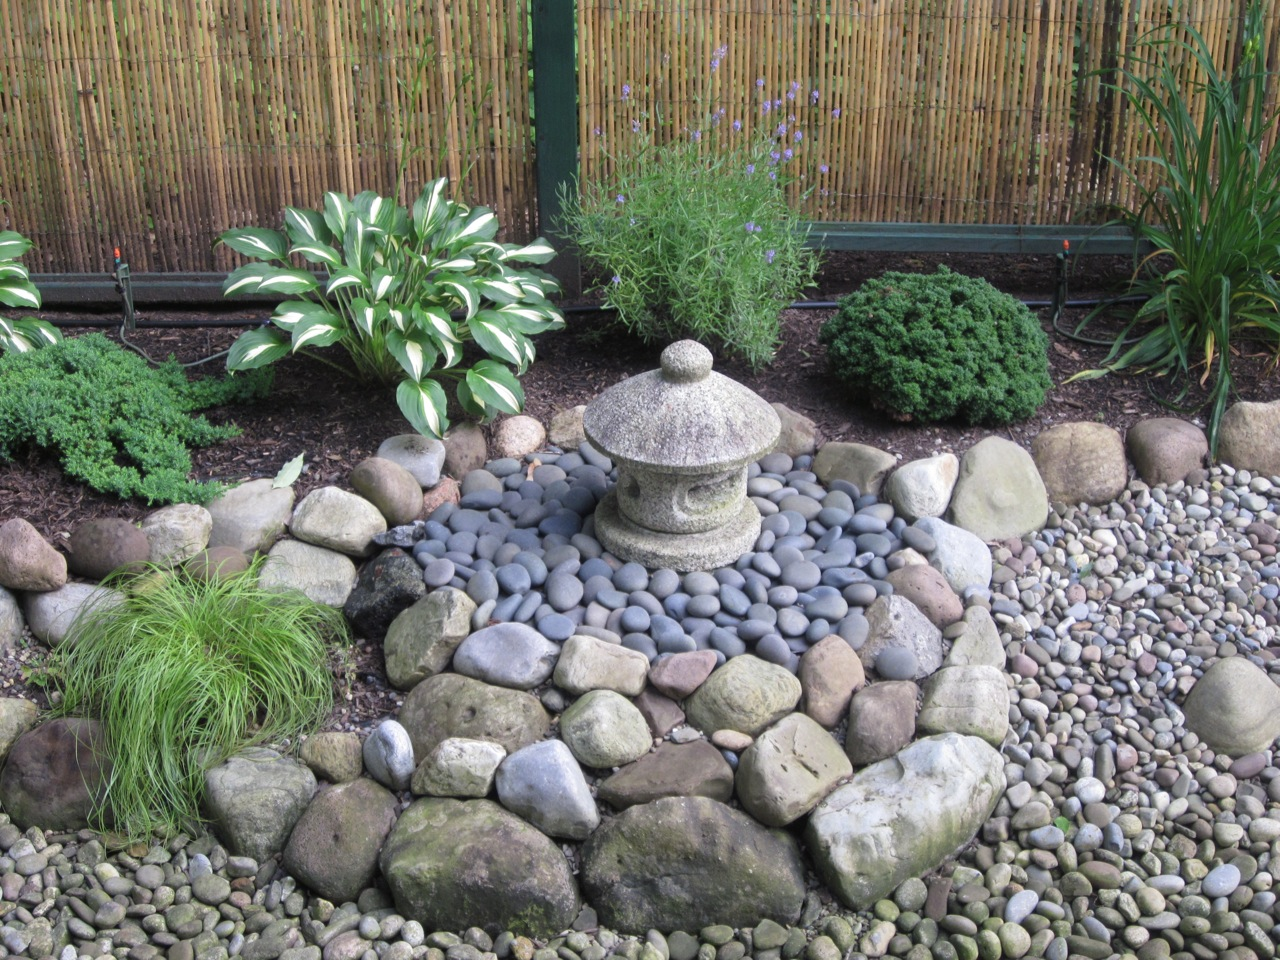 Garden With Rocks And Stones : My zen garden features